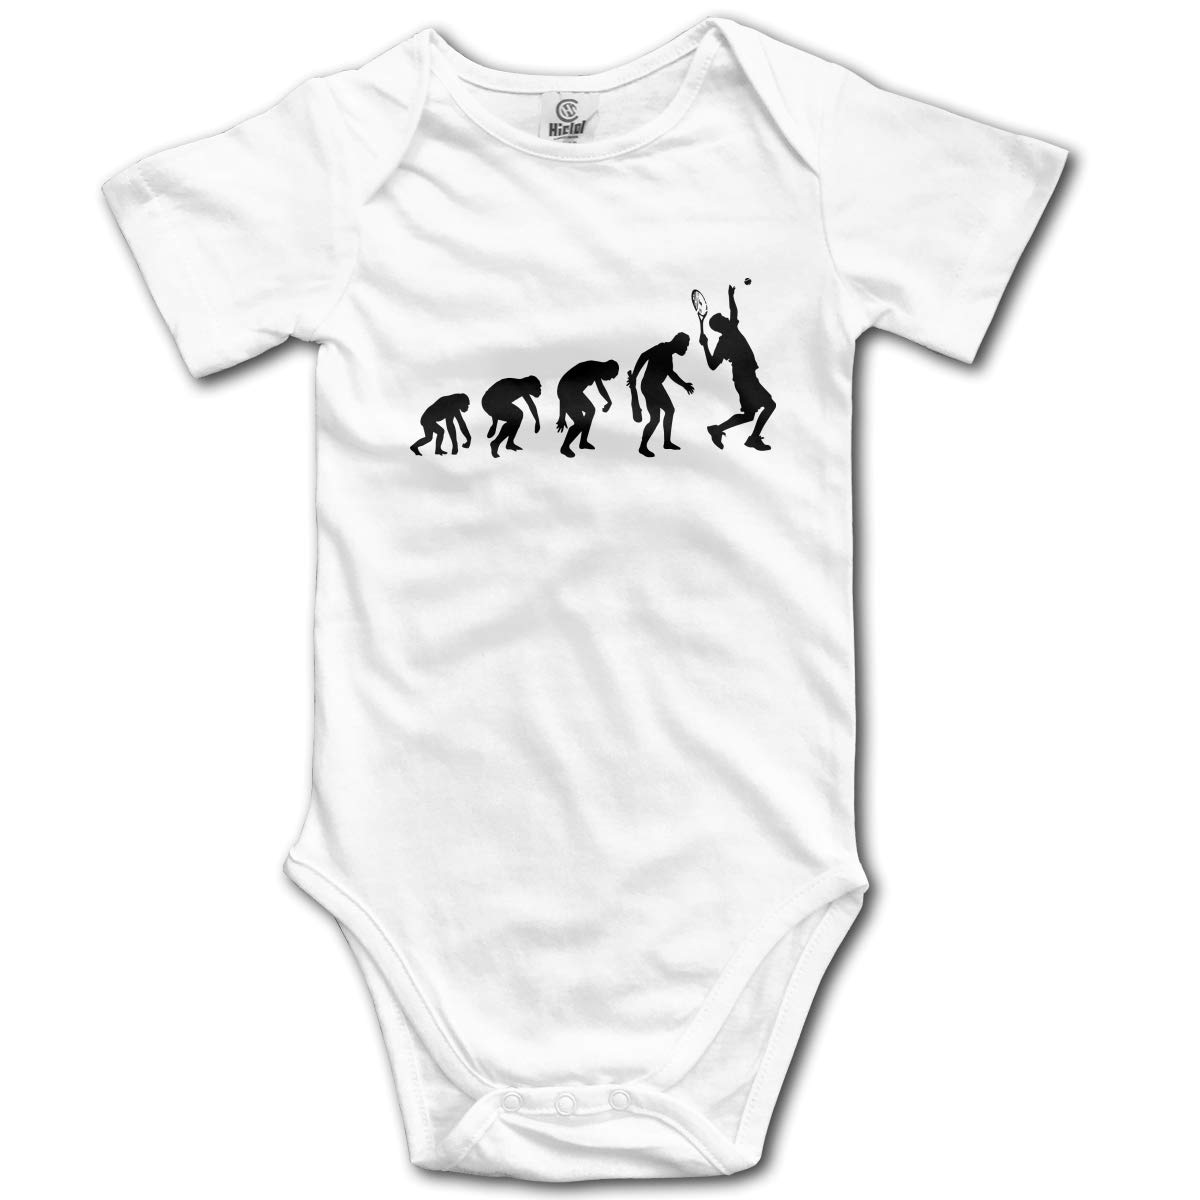 CDHL99 Evolution of A Tennis Player Baby Boys Or Girls Short Sleeve One-Piece Coverall 0-2T